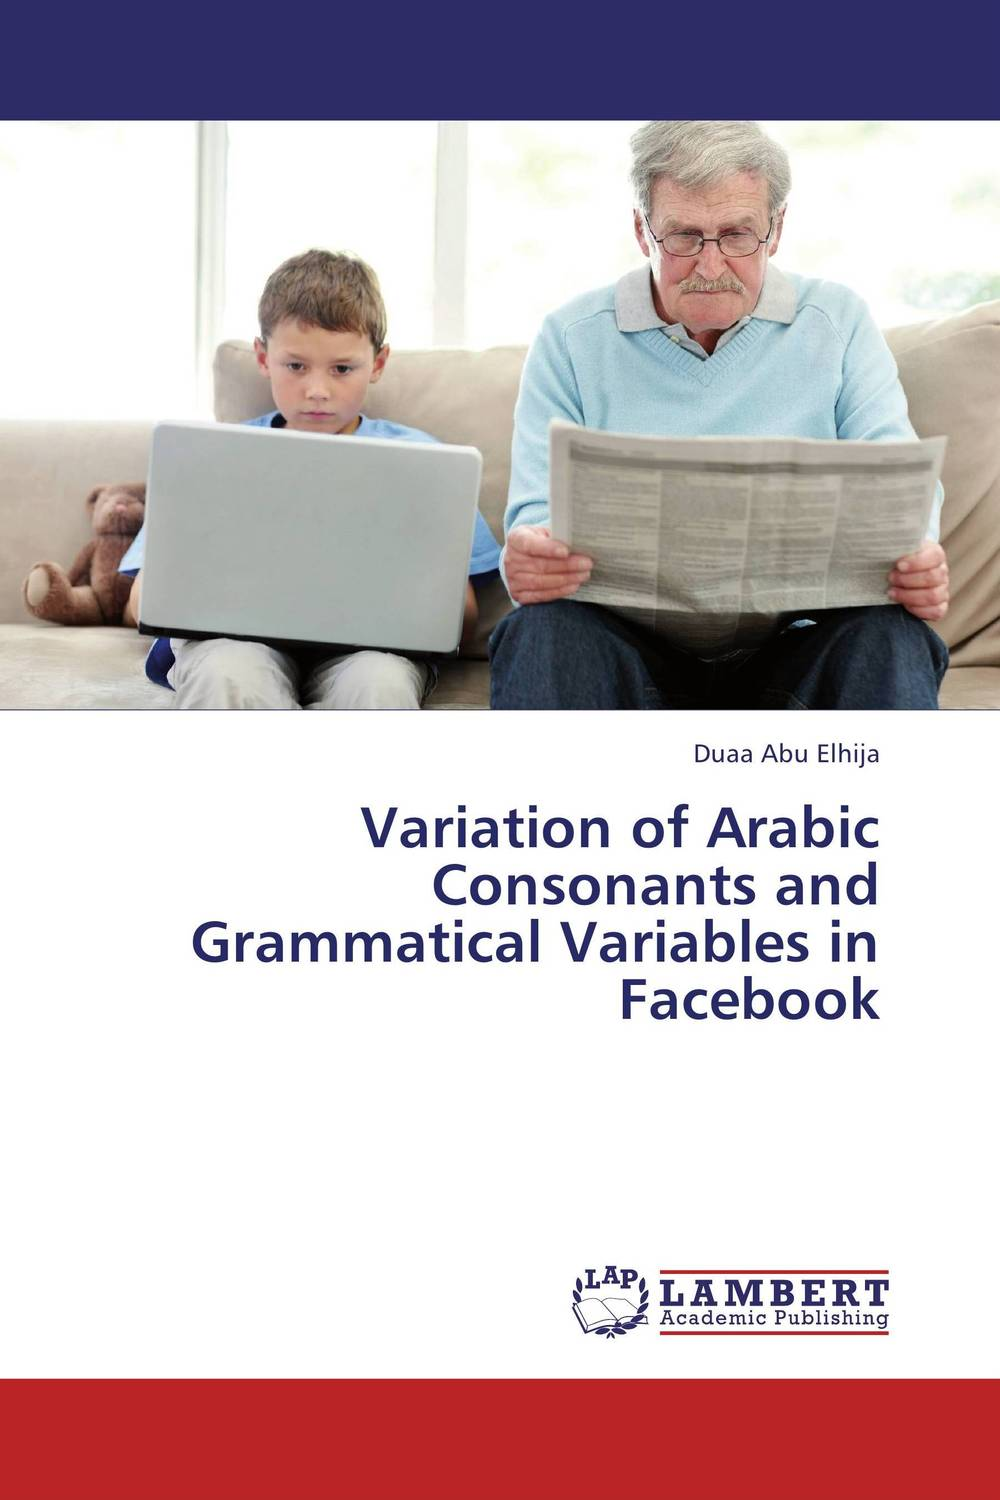 Variation of Arabic Consonants and Grammatical Variables in Facebook language change and lexical variation in youth language